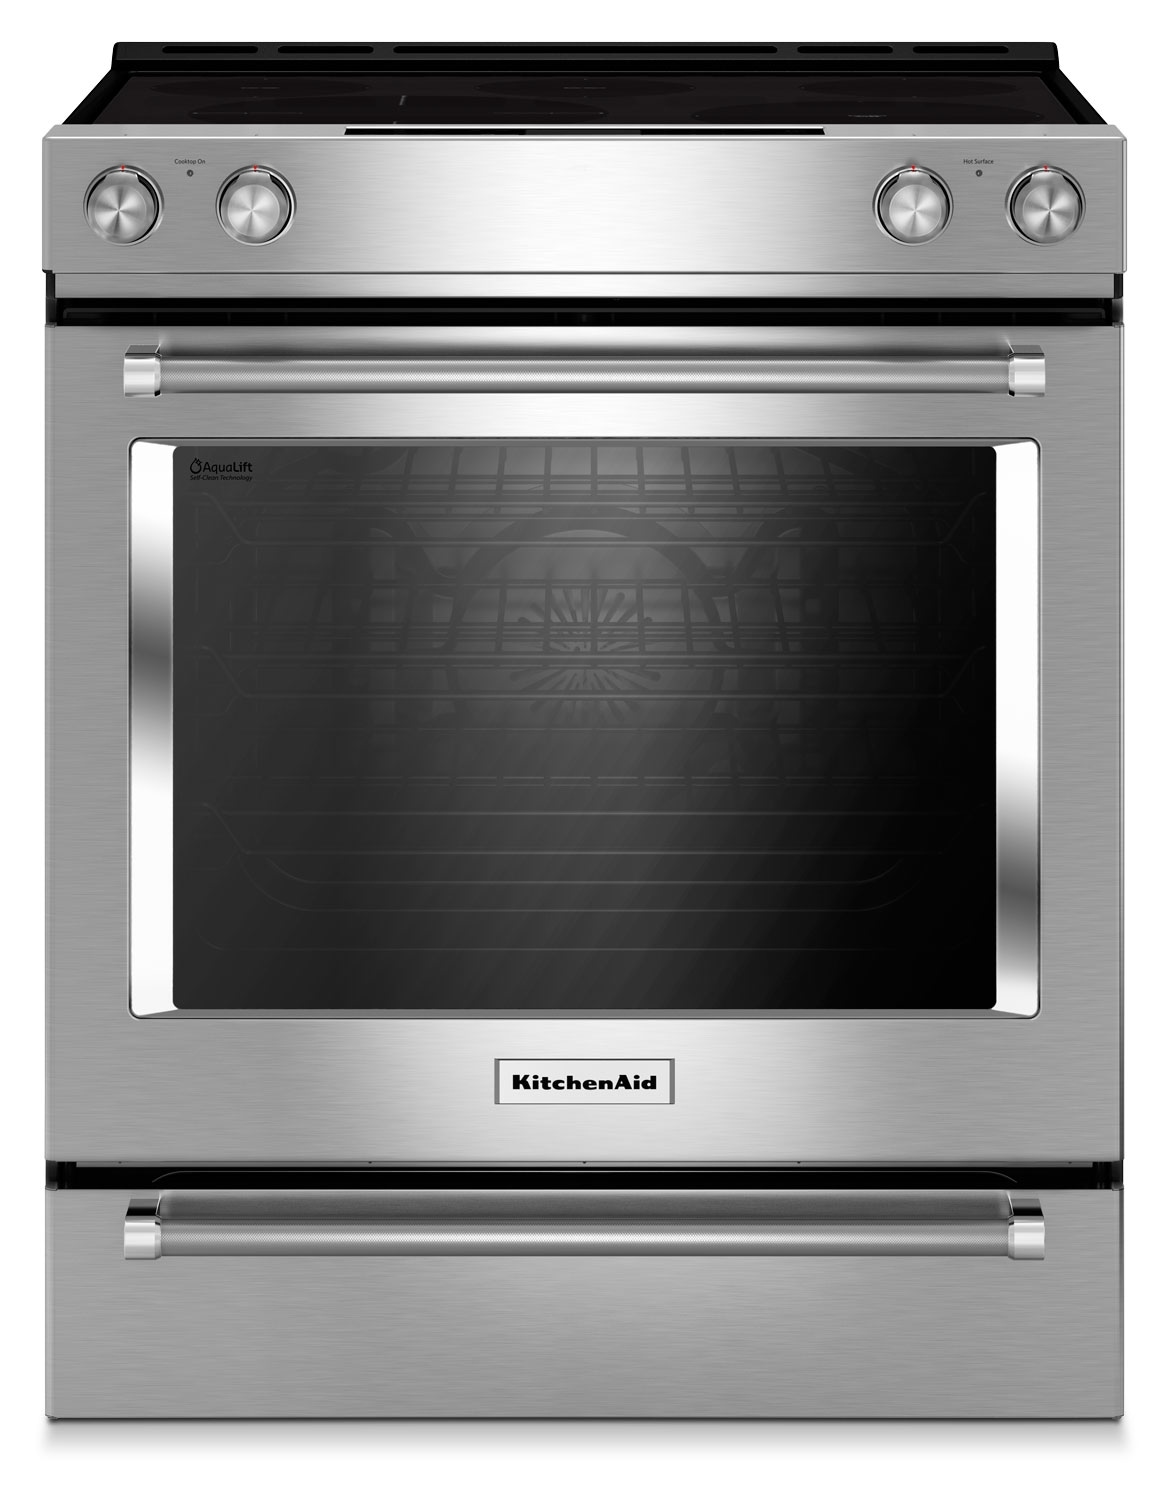 Cooking Products - KitchenAid Stainless Steel Slide-In Electric Convection Range (6.4 Cu. Ft.) - YKSEG700ESS